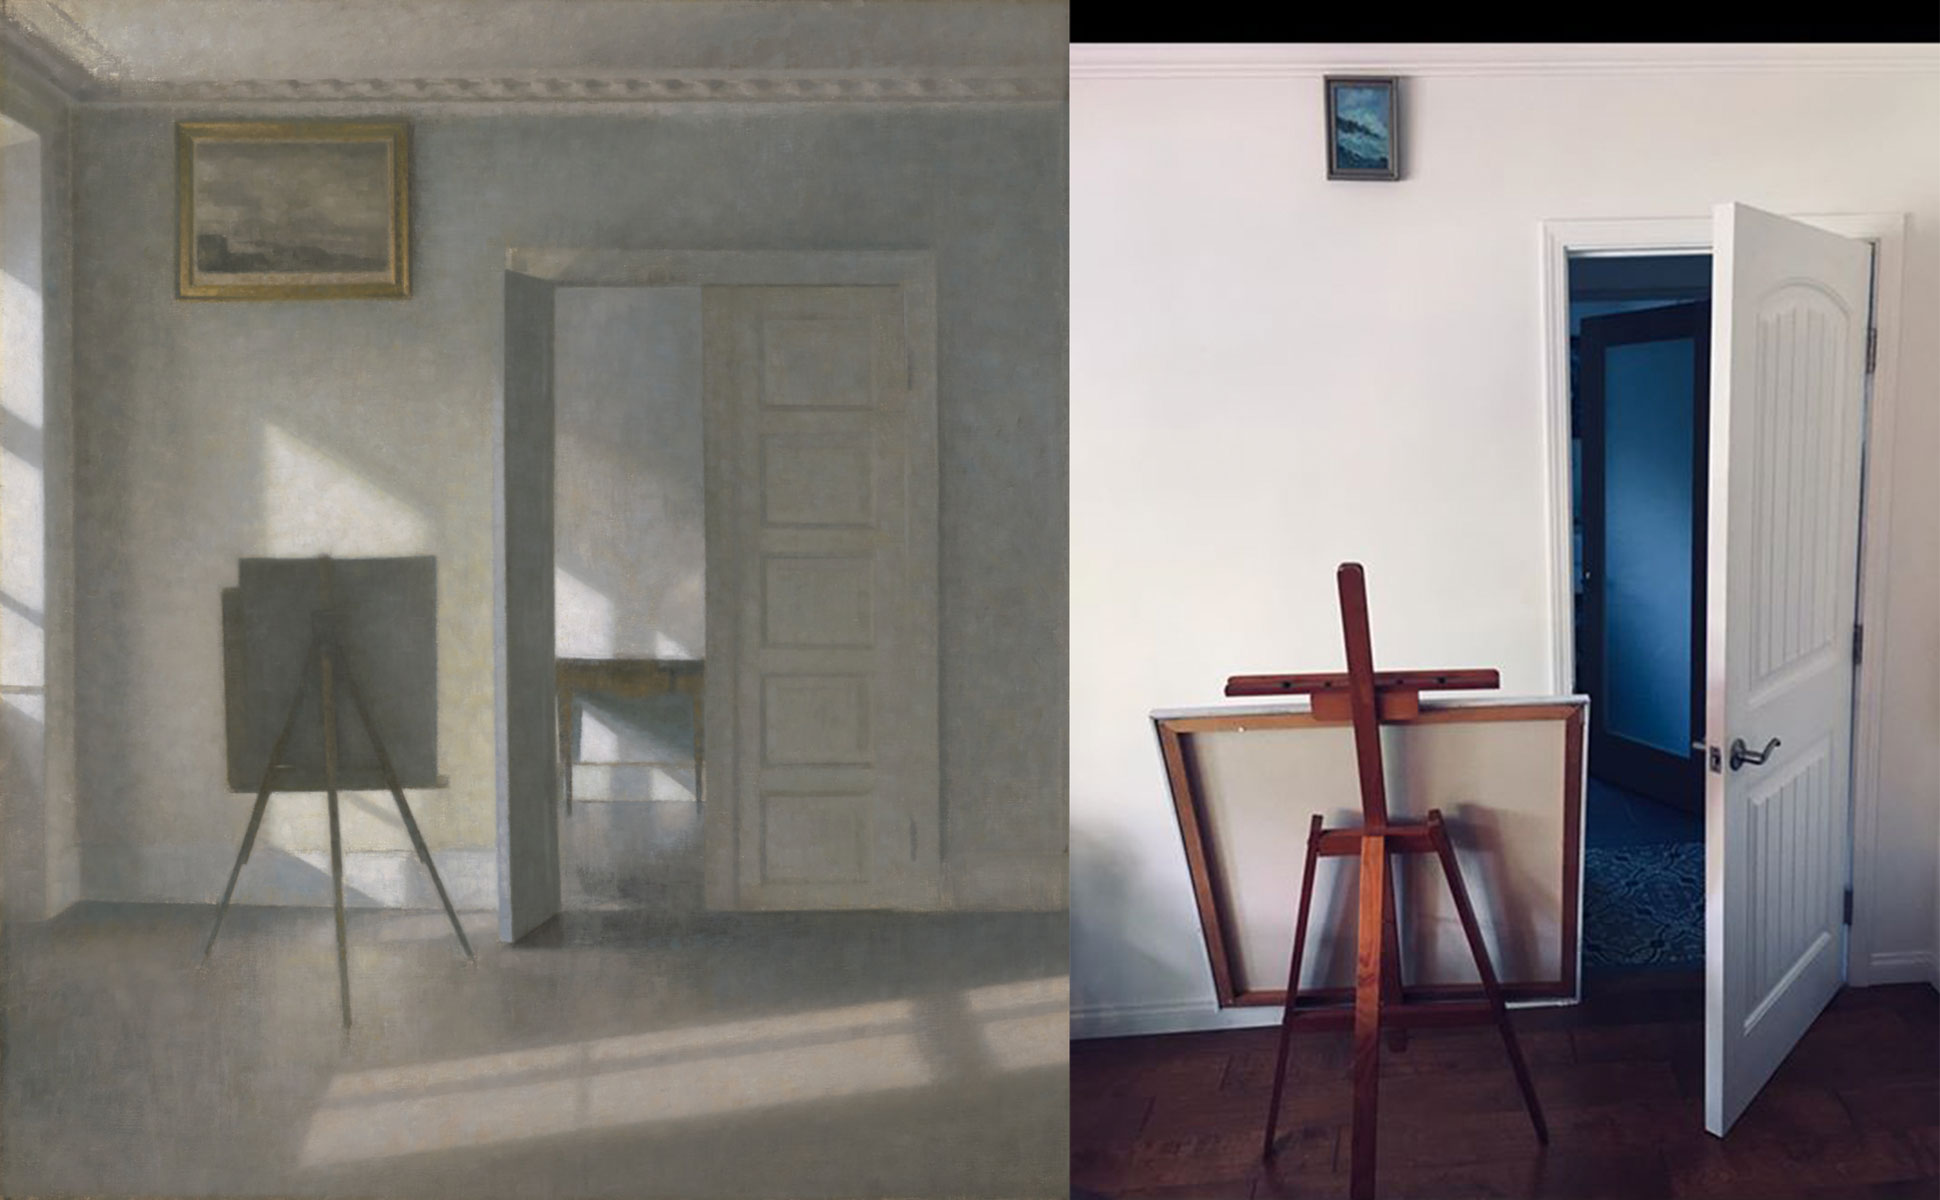 Left: painting of inside room with an easel. Light from a window on the left shines across the floor. Right: Wooden easel against a white wall next to an open door.